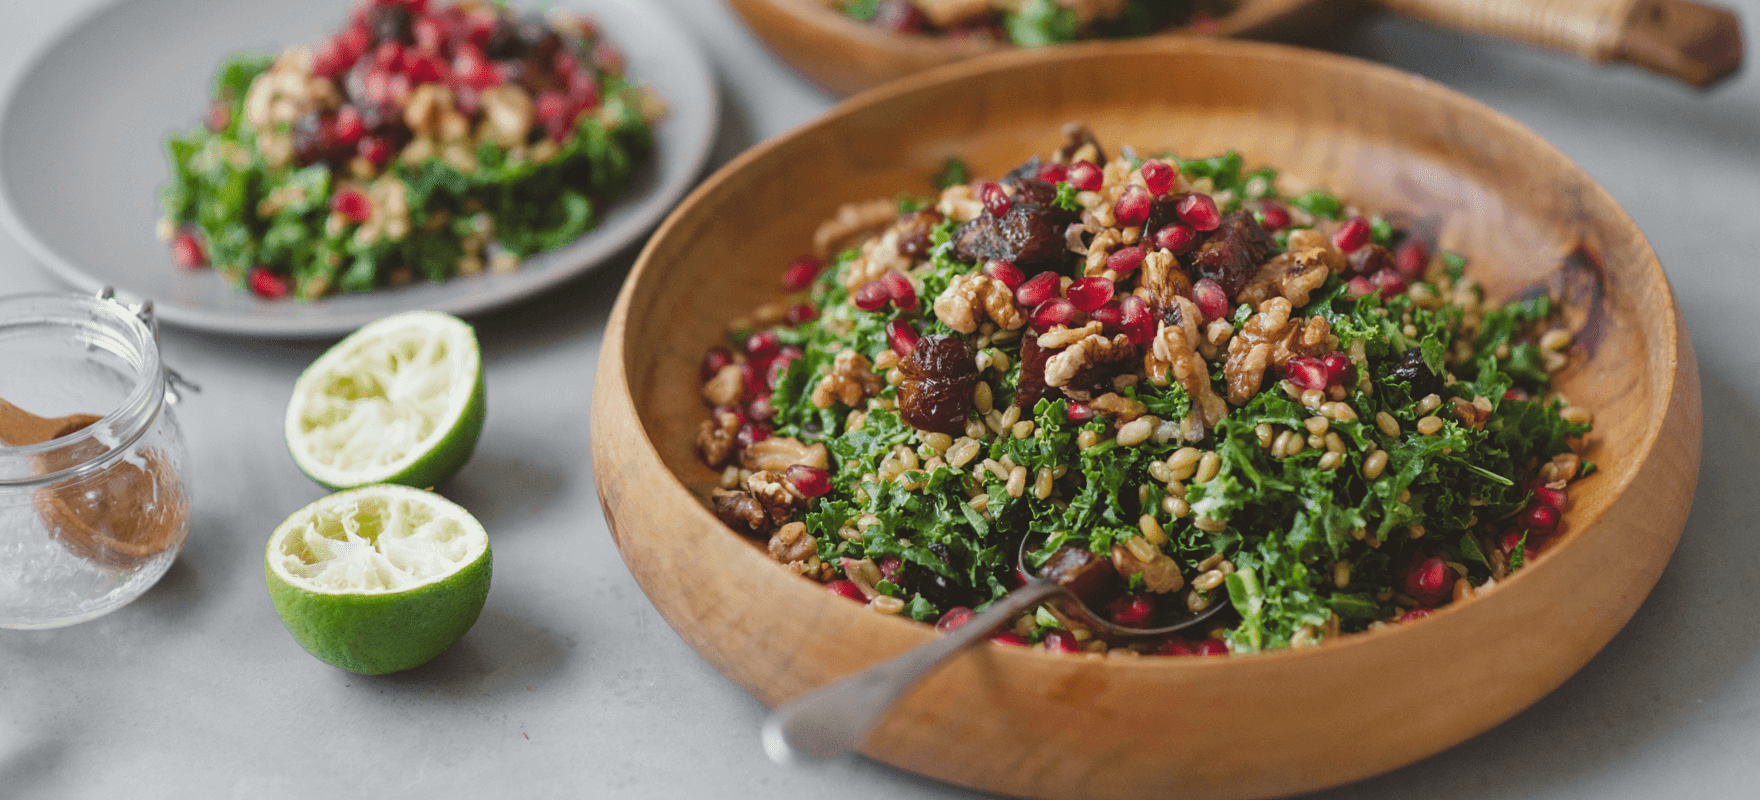 Middle Eastern farro salad image 2